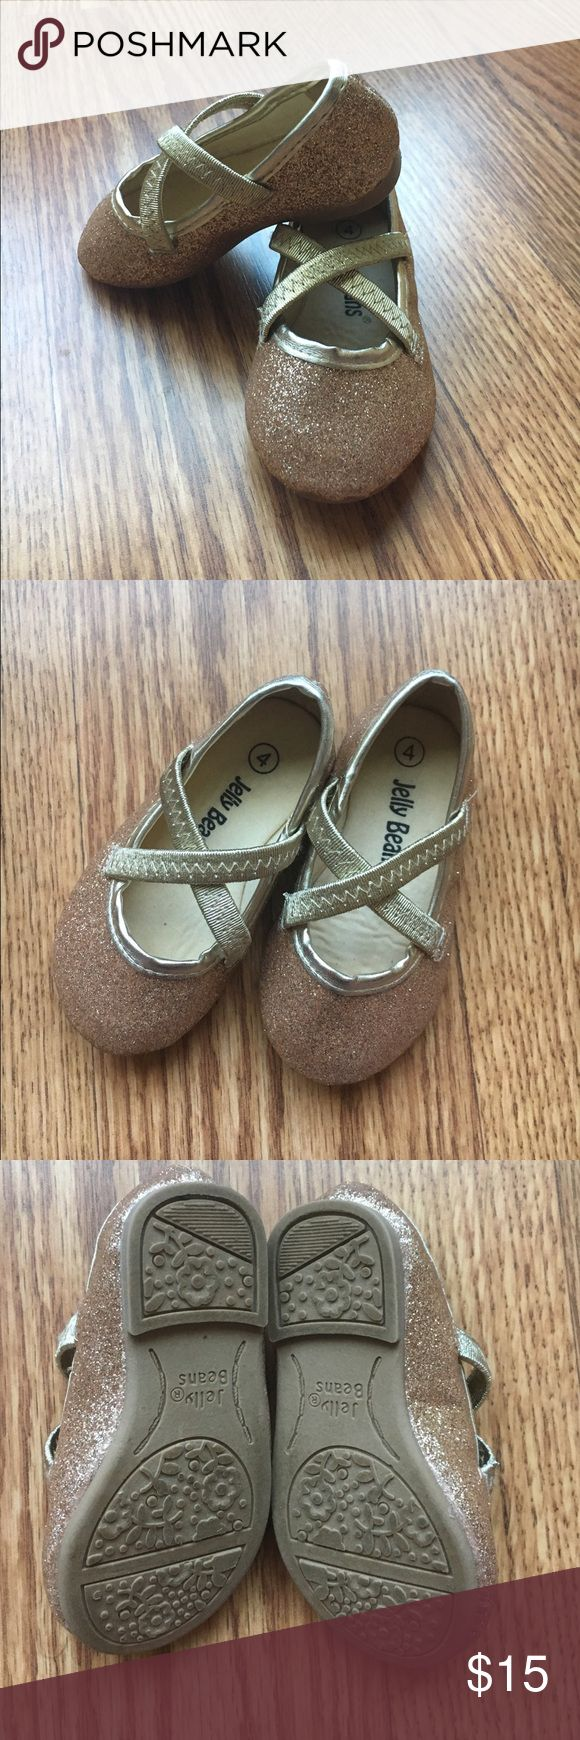 🎉SUNDAY FUNDAY SALE! Girls gold sparkle flats Infant/toddler size 4 girls gold sparkle flats. Worn once for a wedding. Super adorable! No box Jelly Beans Shoes Dress Shoes